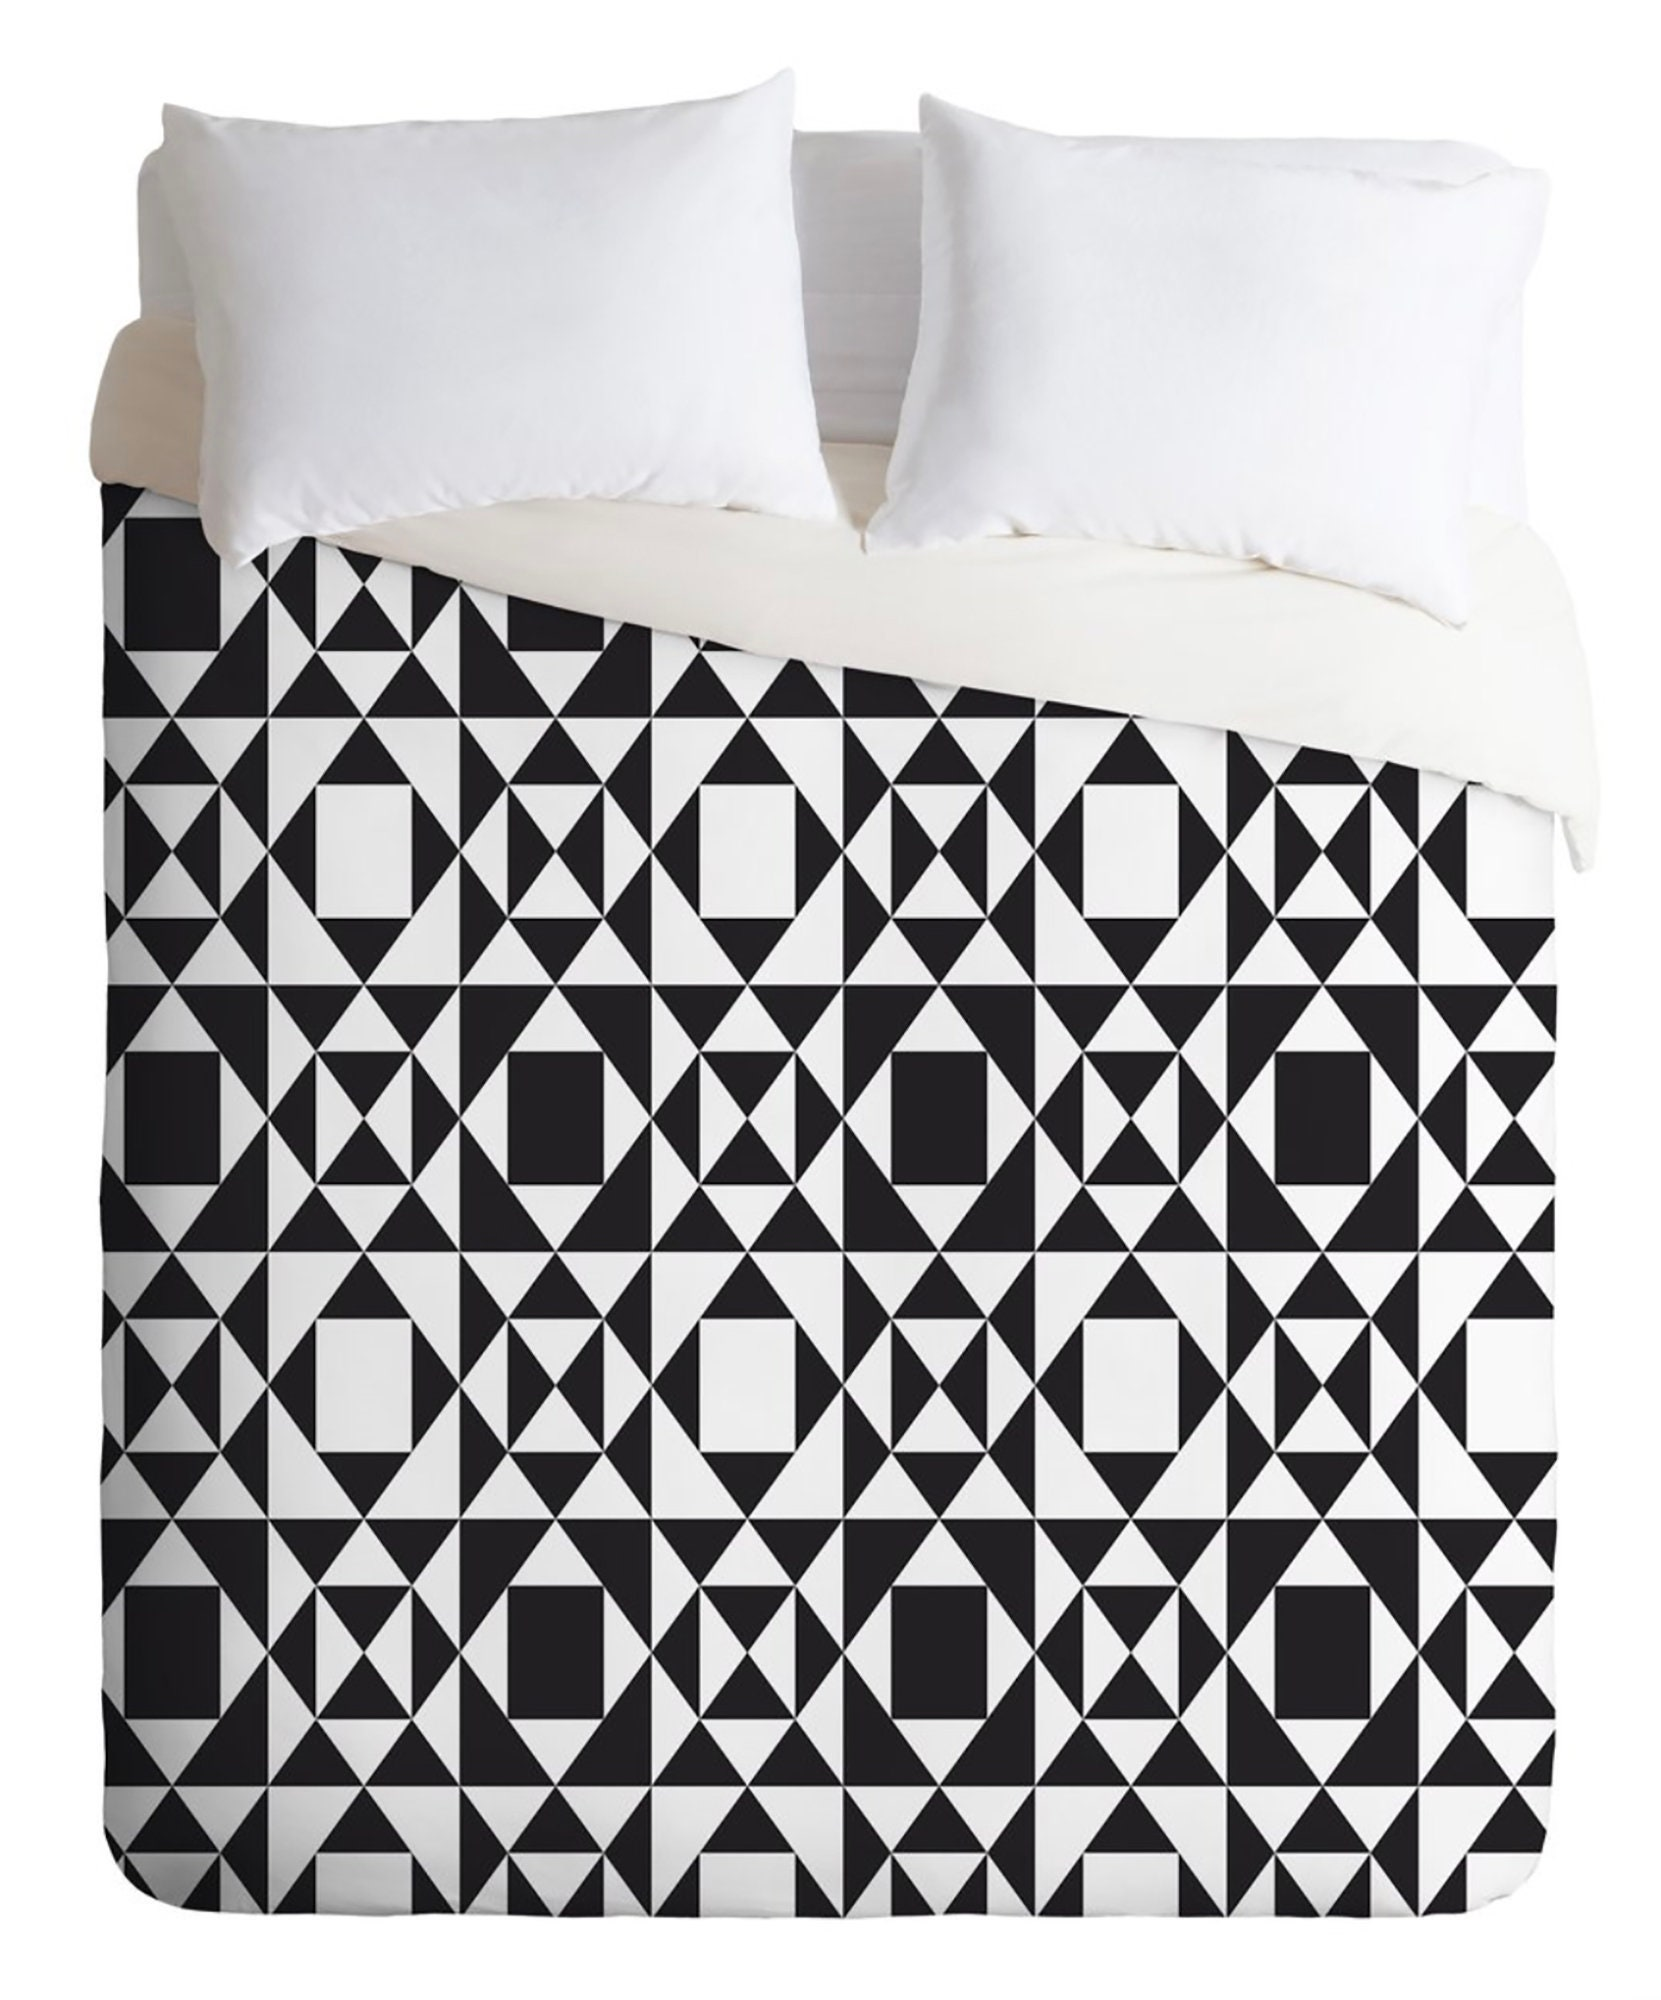 Couverture de couette noire et blanche // Literie // Twin, Queen, King Sizes // Home Decor // Rhythm Design // Tribal Pattern // Modern Geometric Print